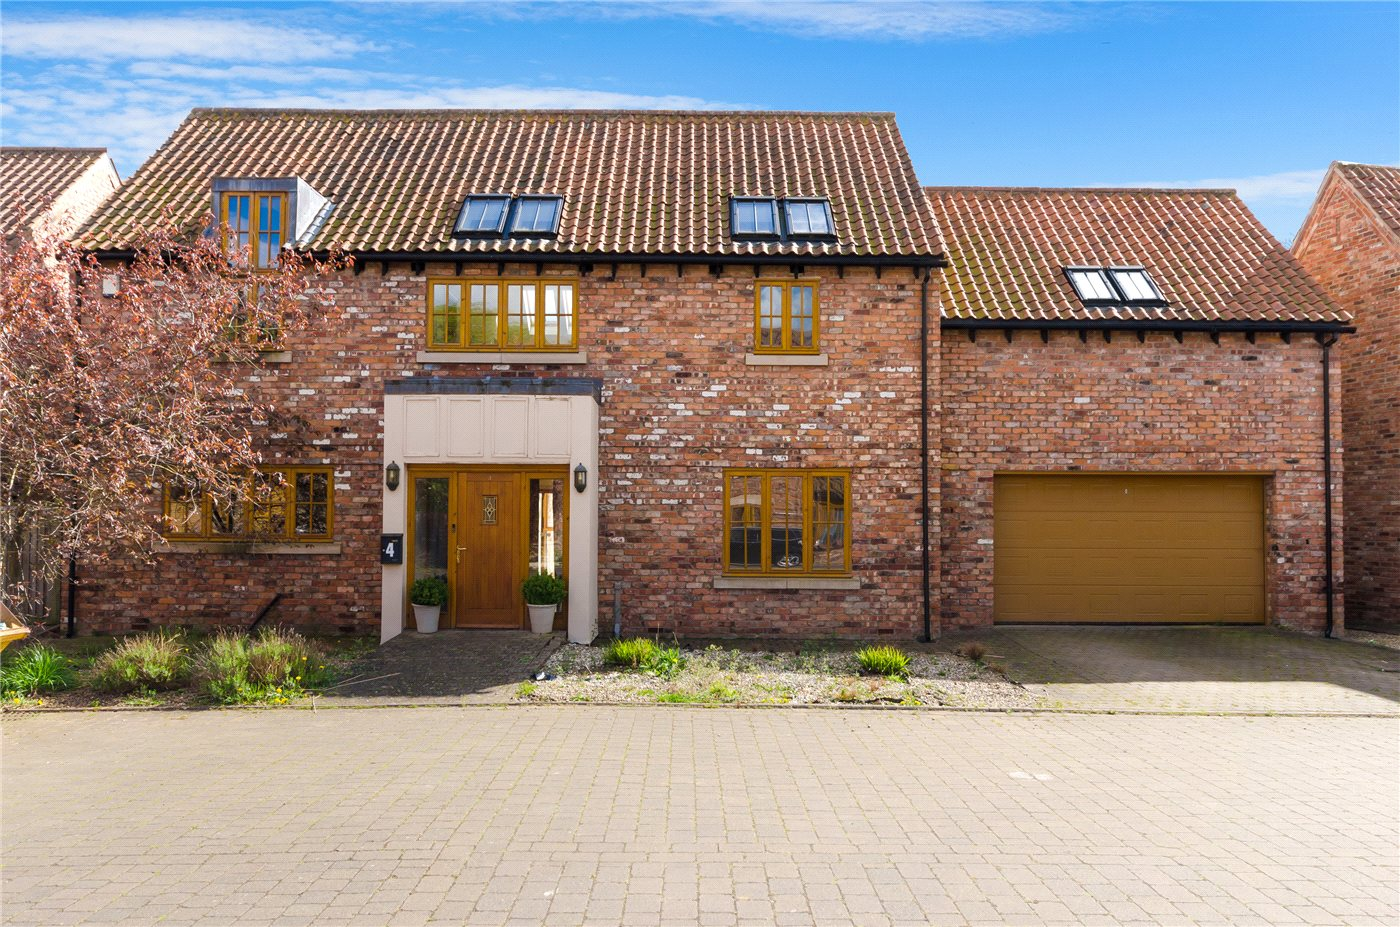 5 Bedrooms Detached House for sale in North End Close, Foston, Grantham, NG32